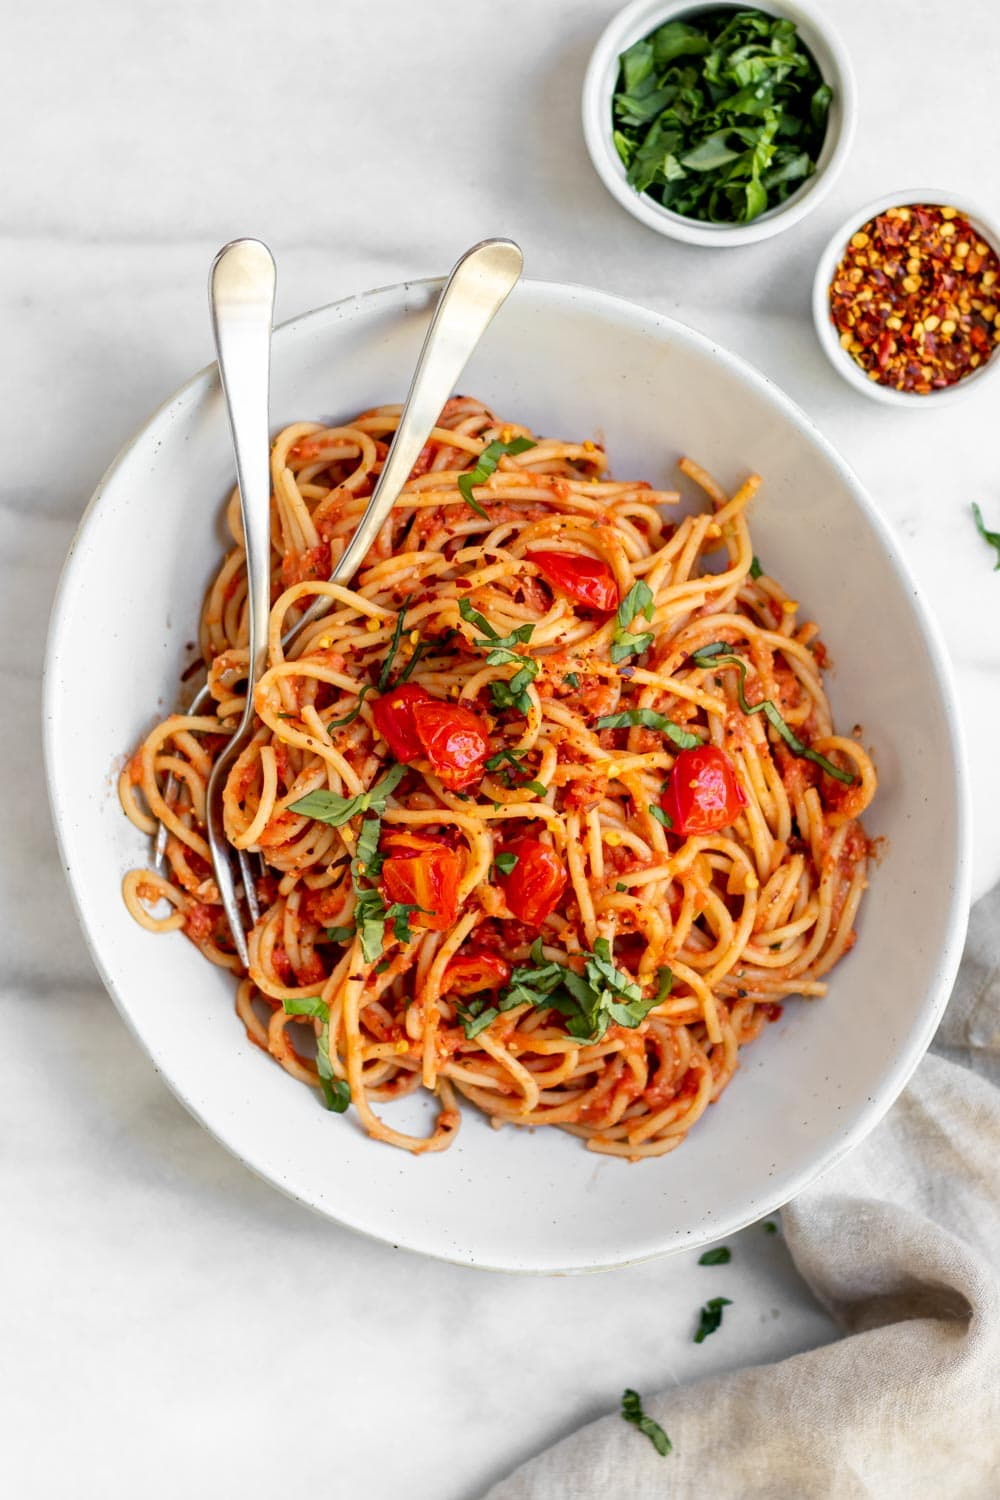 Spaghetti pomodoro with sauteed tomatoes on top.